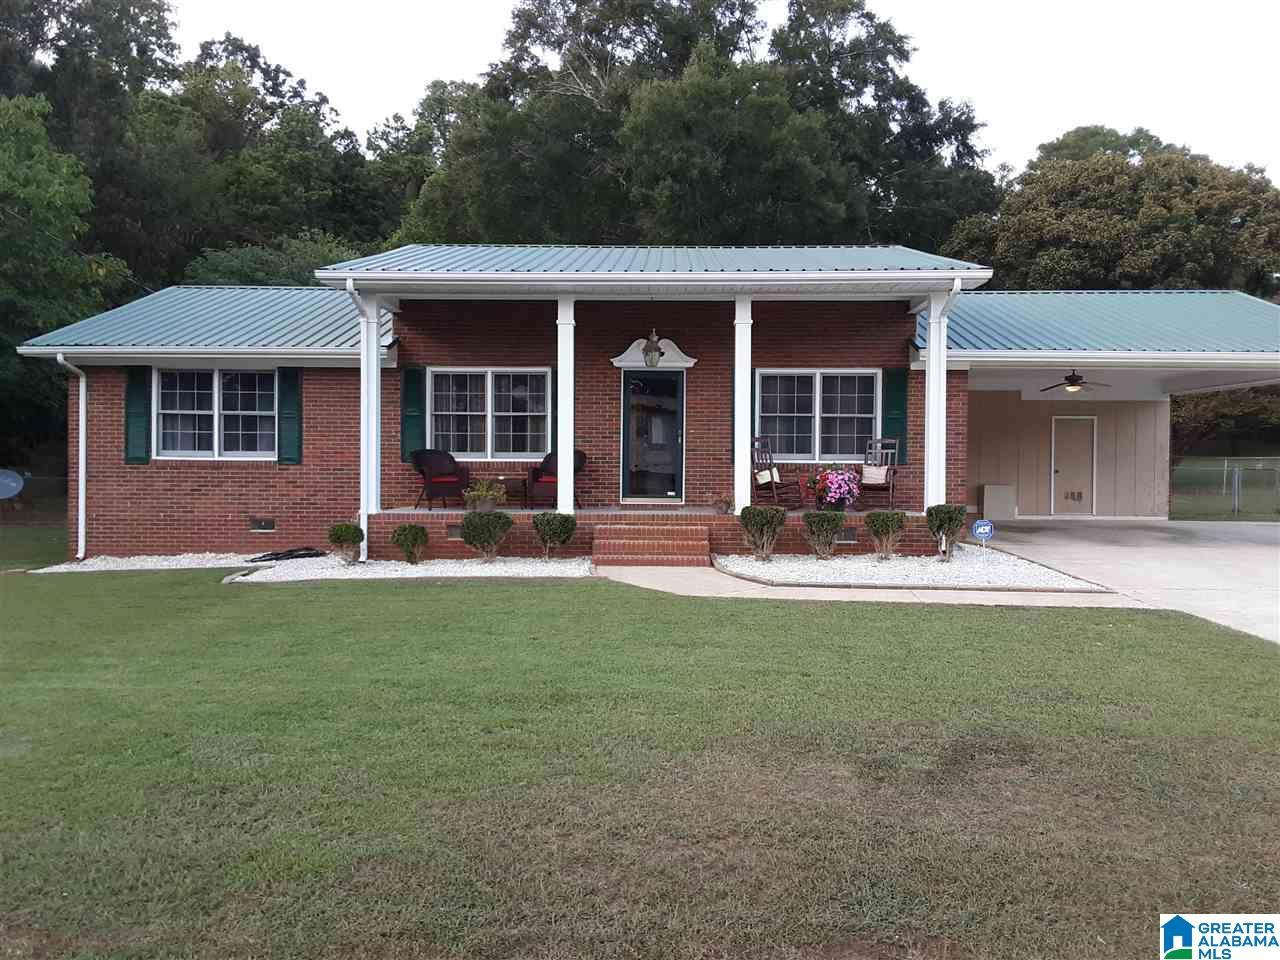 182 ALAN DR, Oxford, AL 36203 - MLS#: 896297